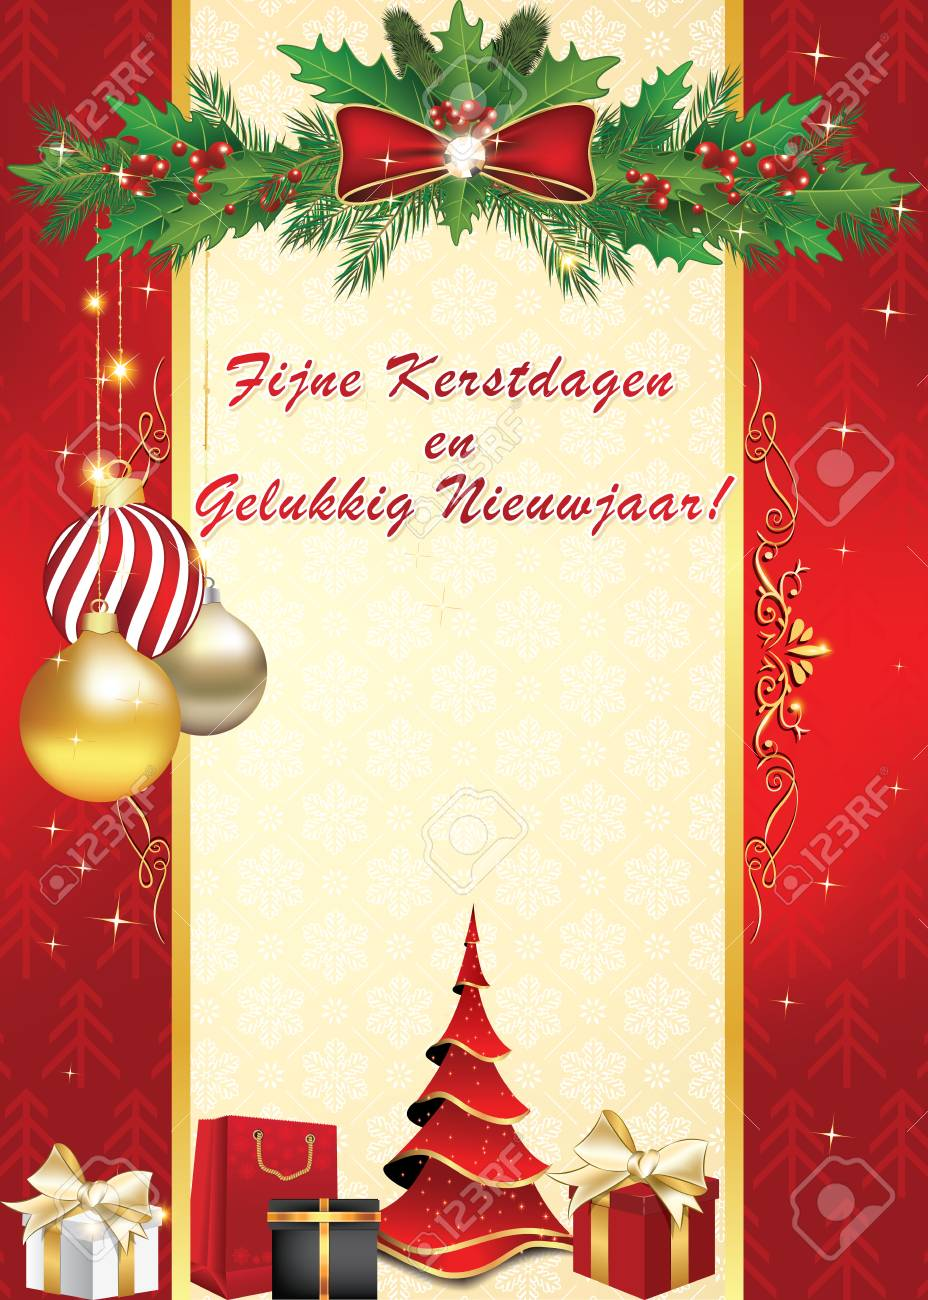 We Wish You Merry Christmas And Happy New Year - Dutch Language ...